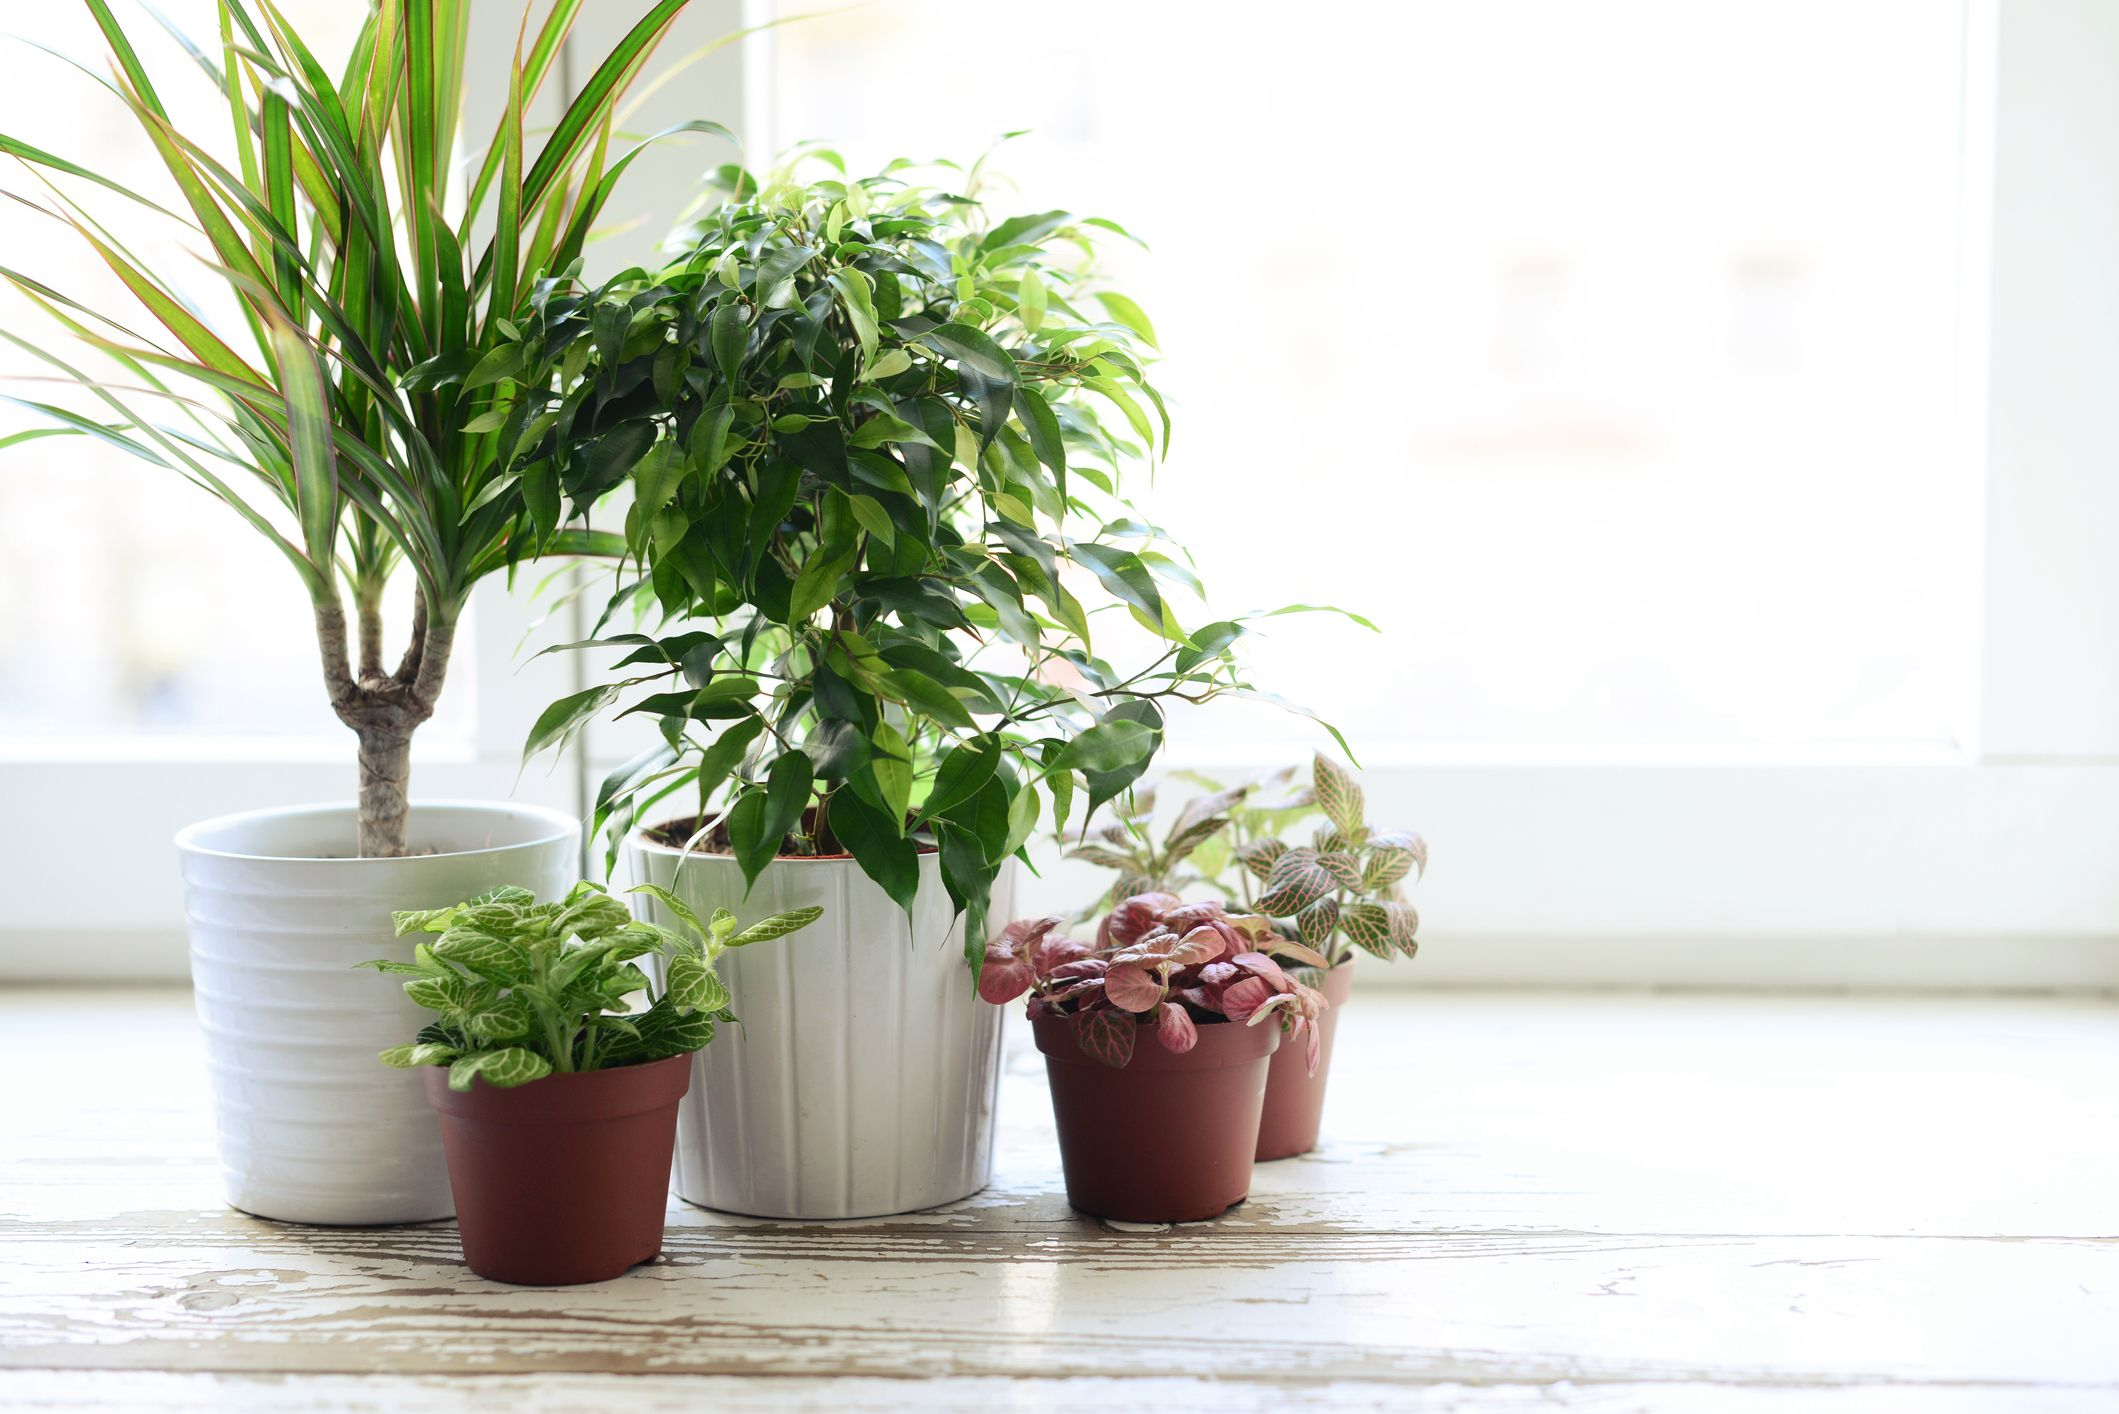 Move garden plants inside your home for winter over a two week period, experts say